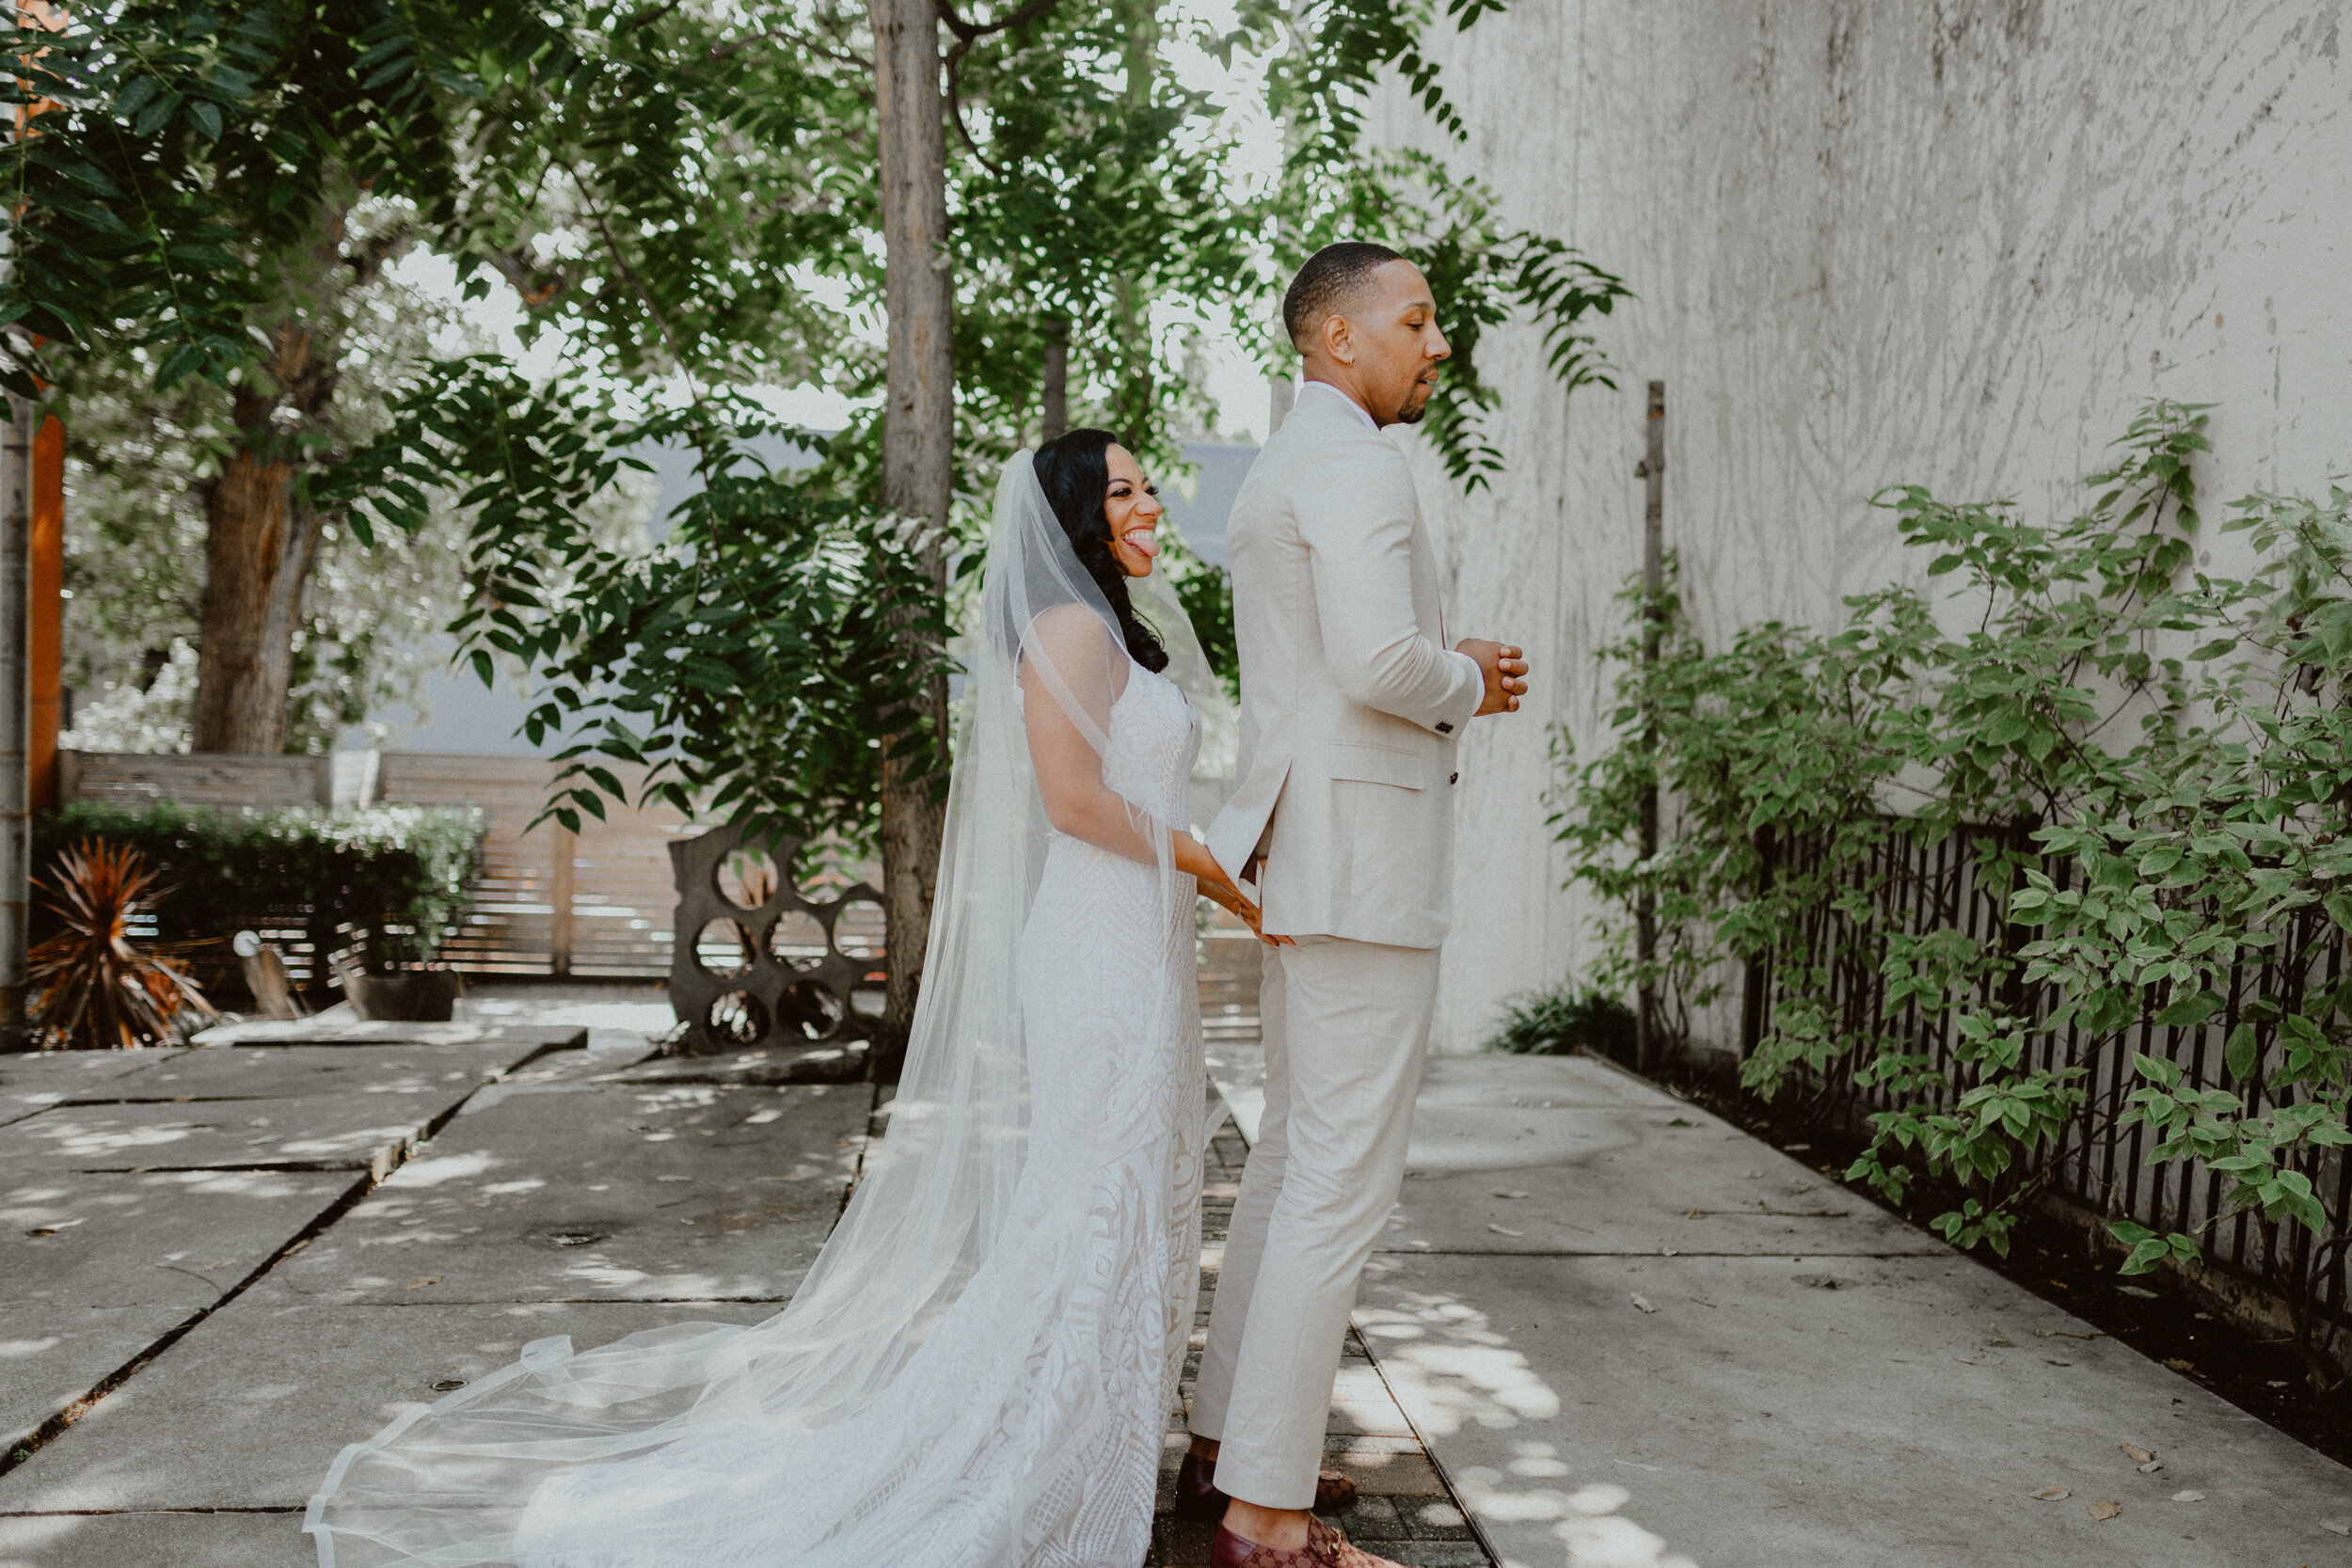 Kelly-Jacob-Wedding-Previews-Fremont-Foundry-Seattle-Chelsea-Abril-Photography-8511.jpg